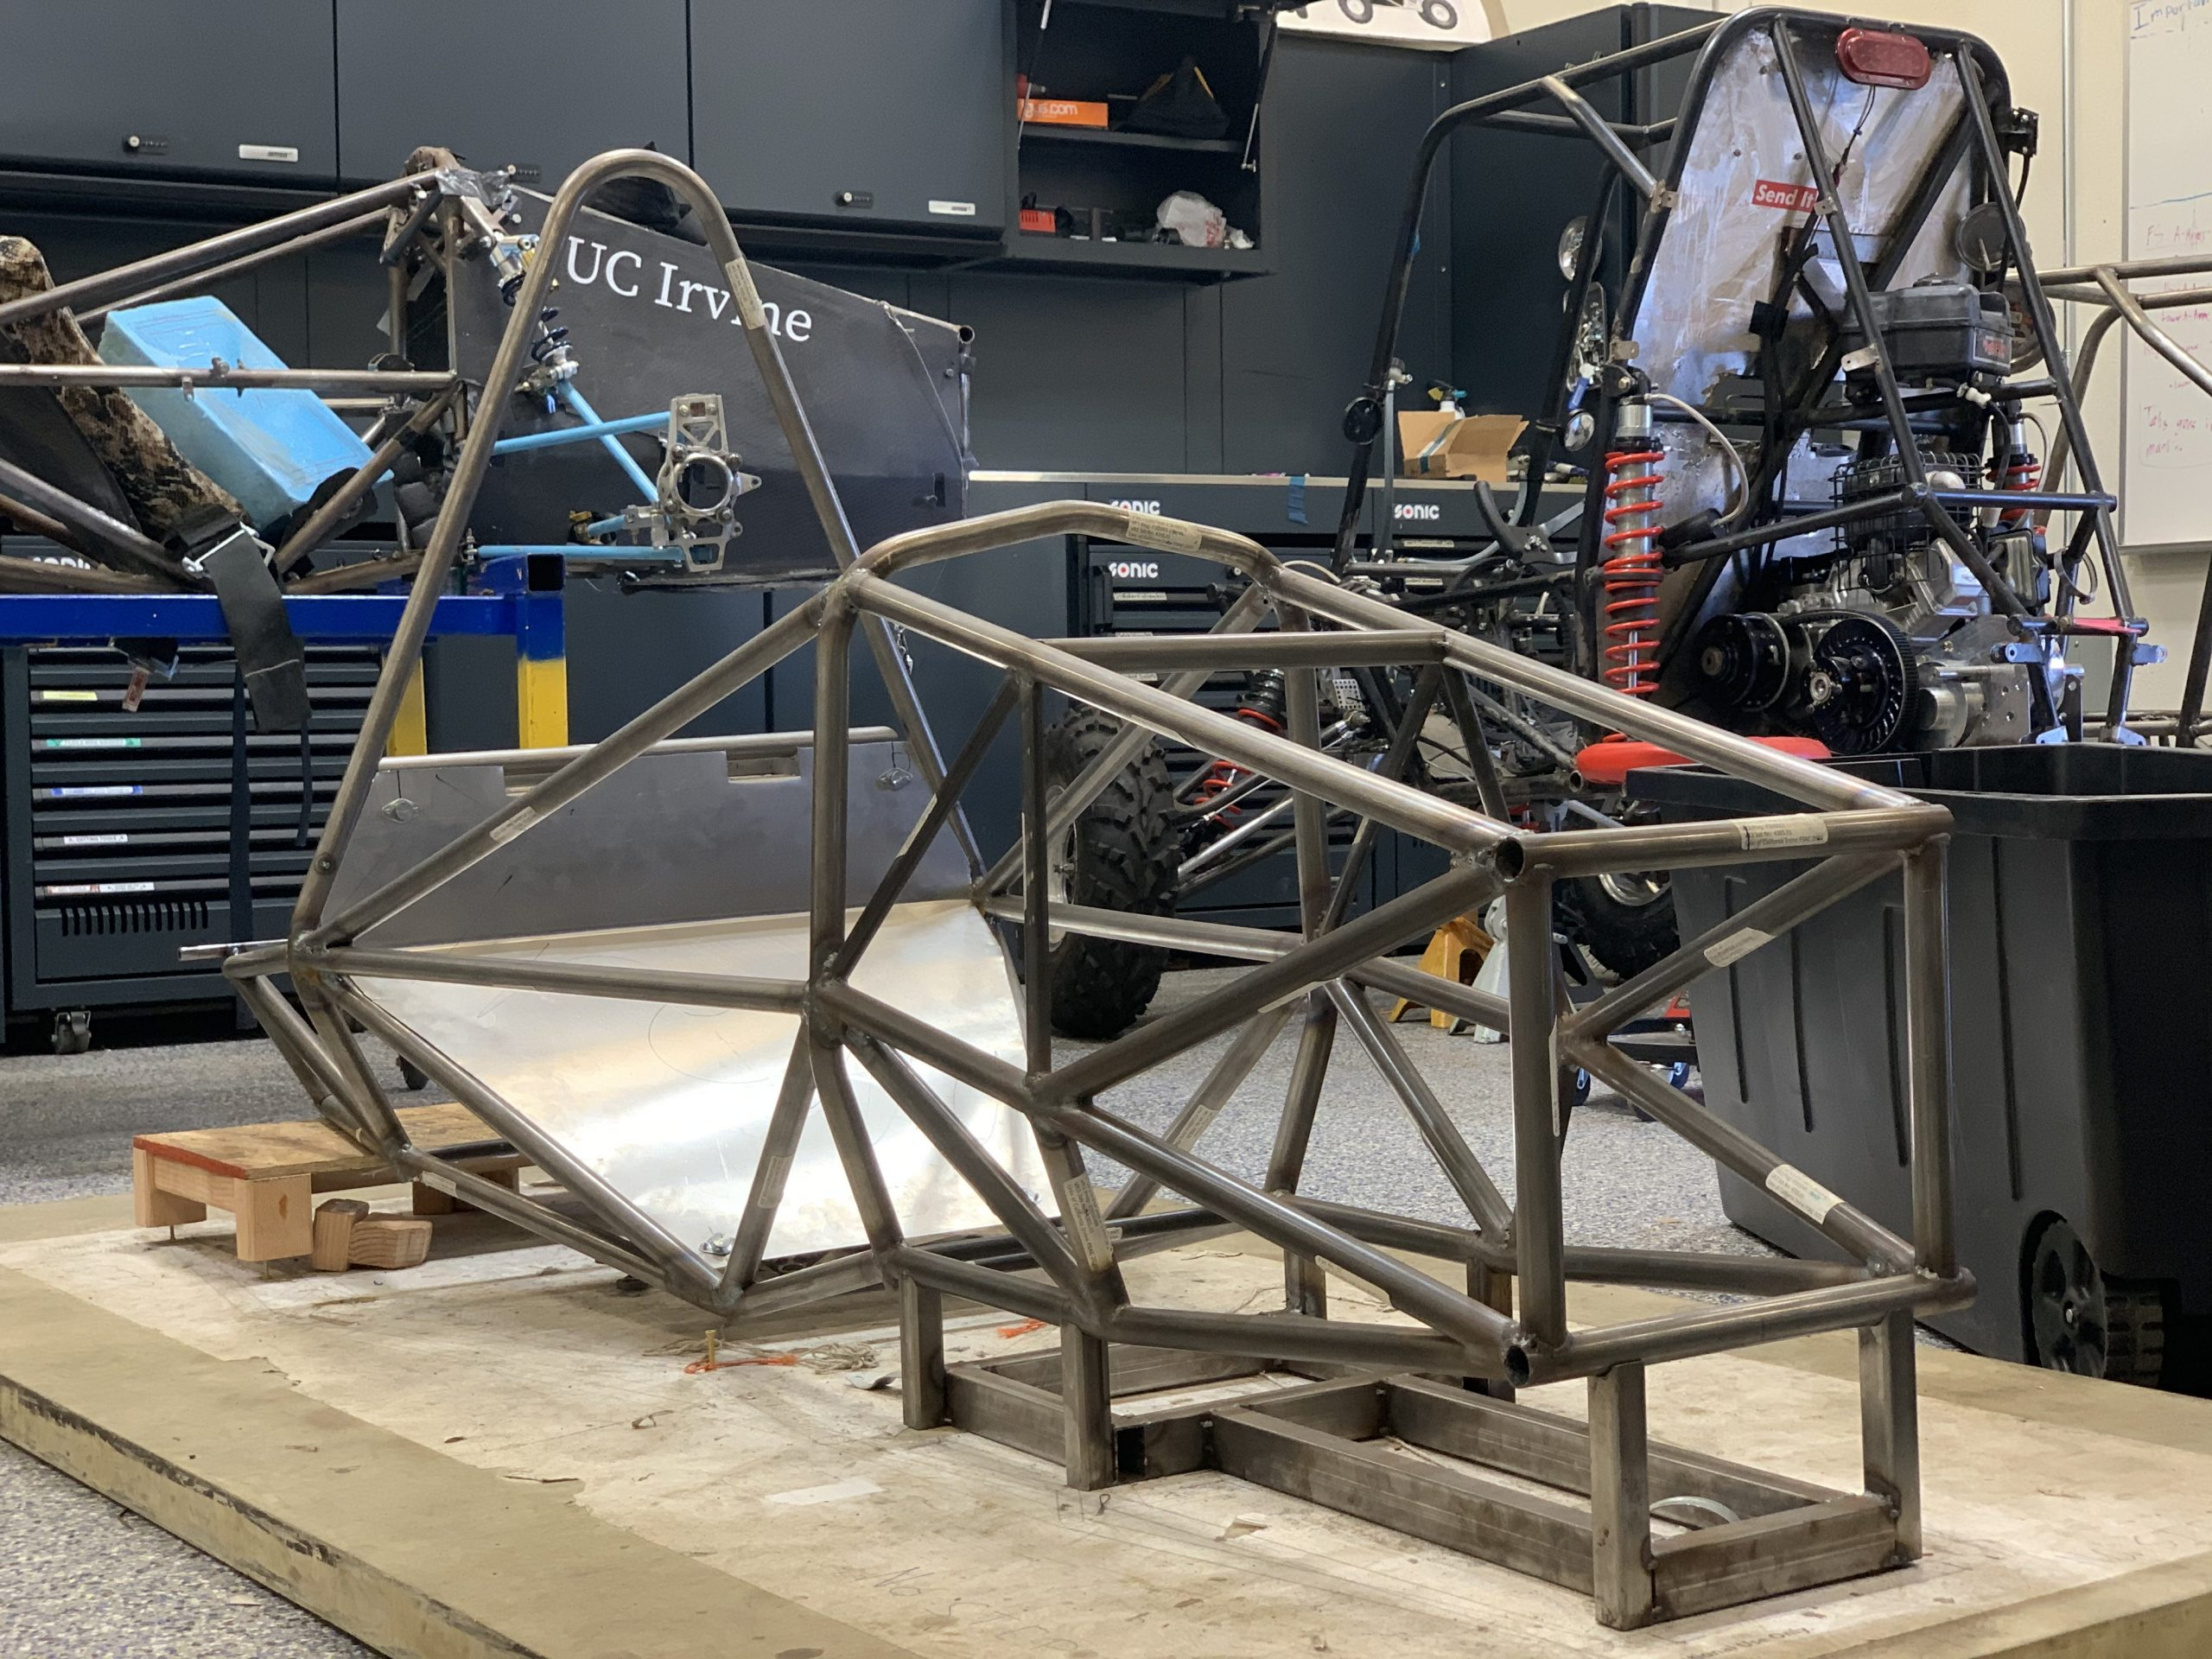 IMG_0106 Chassis Feb Update